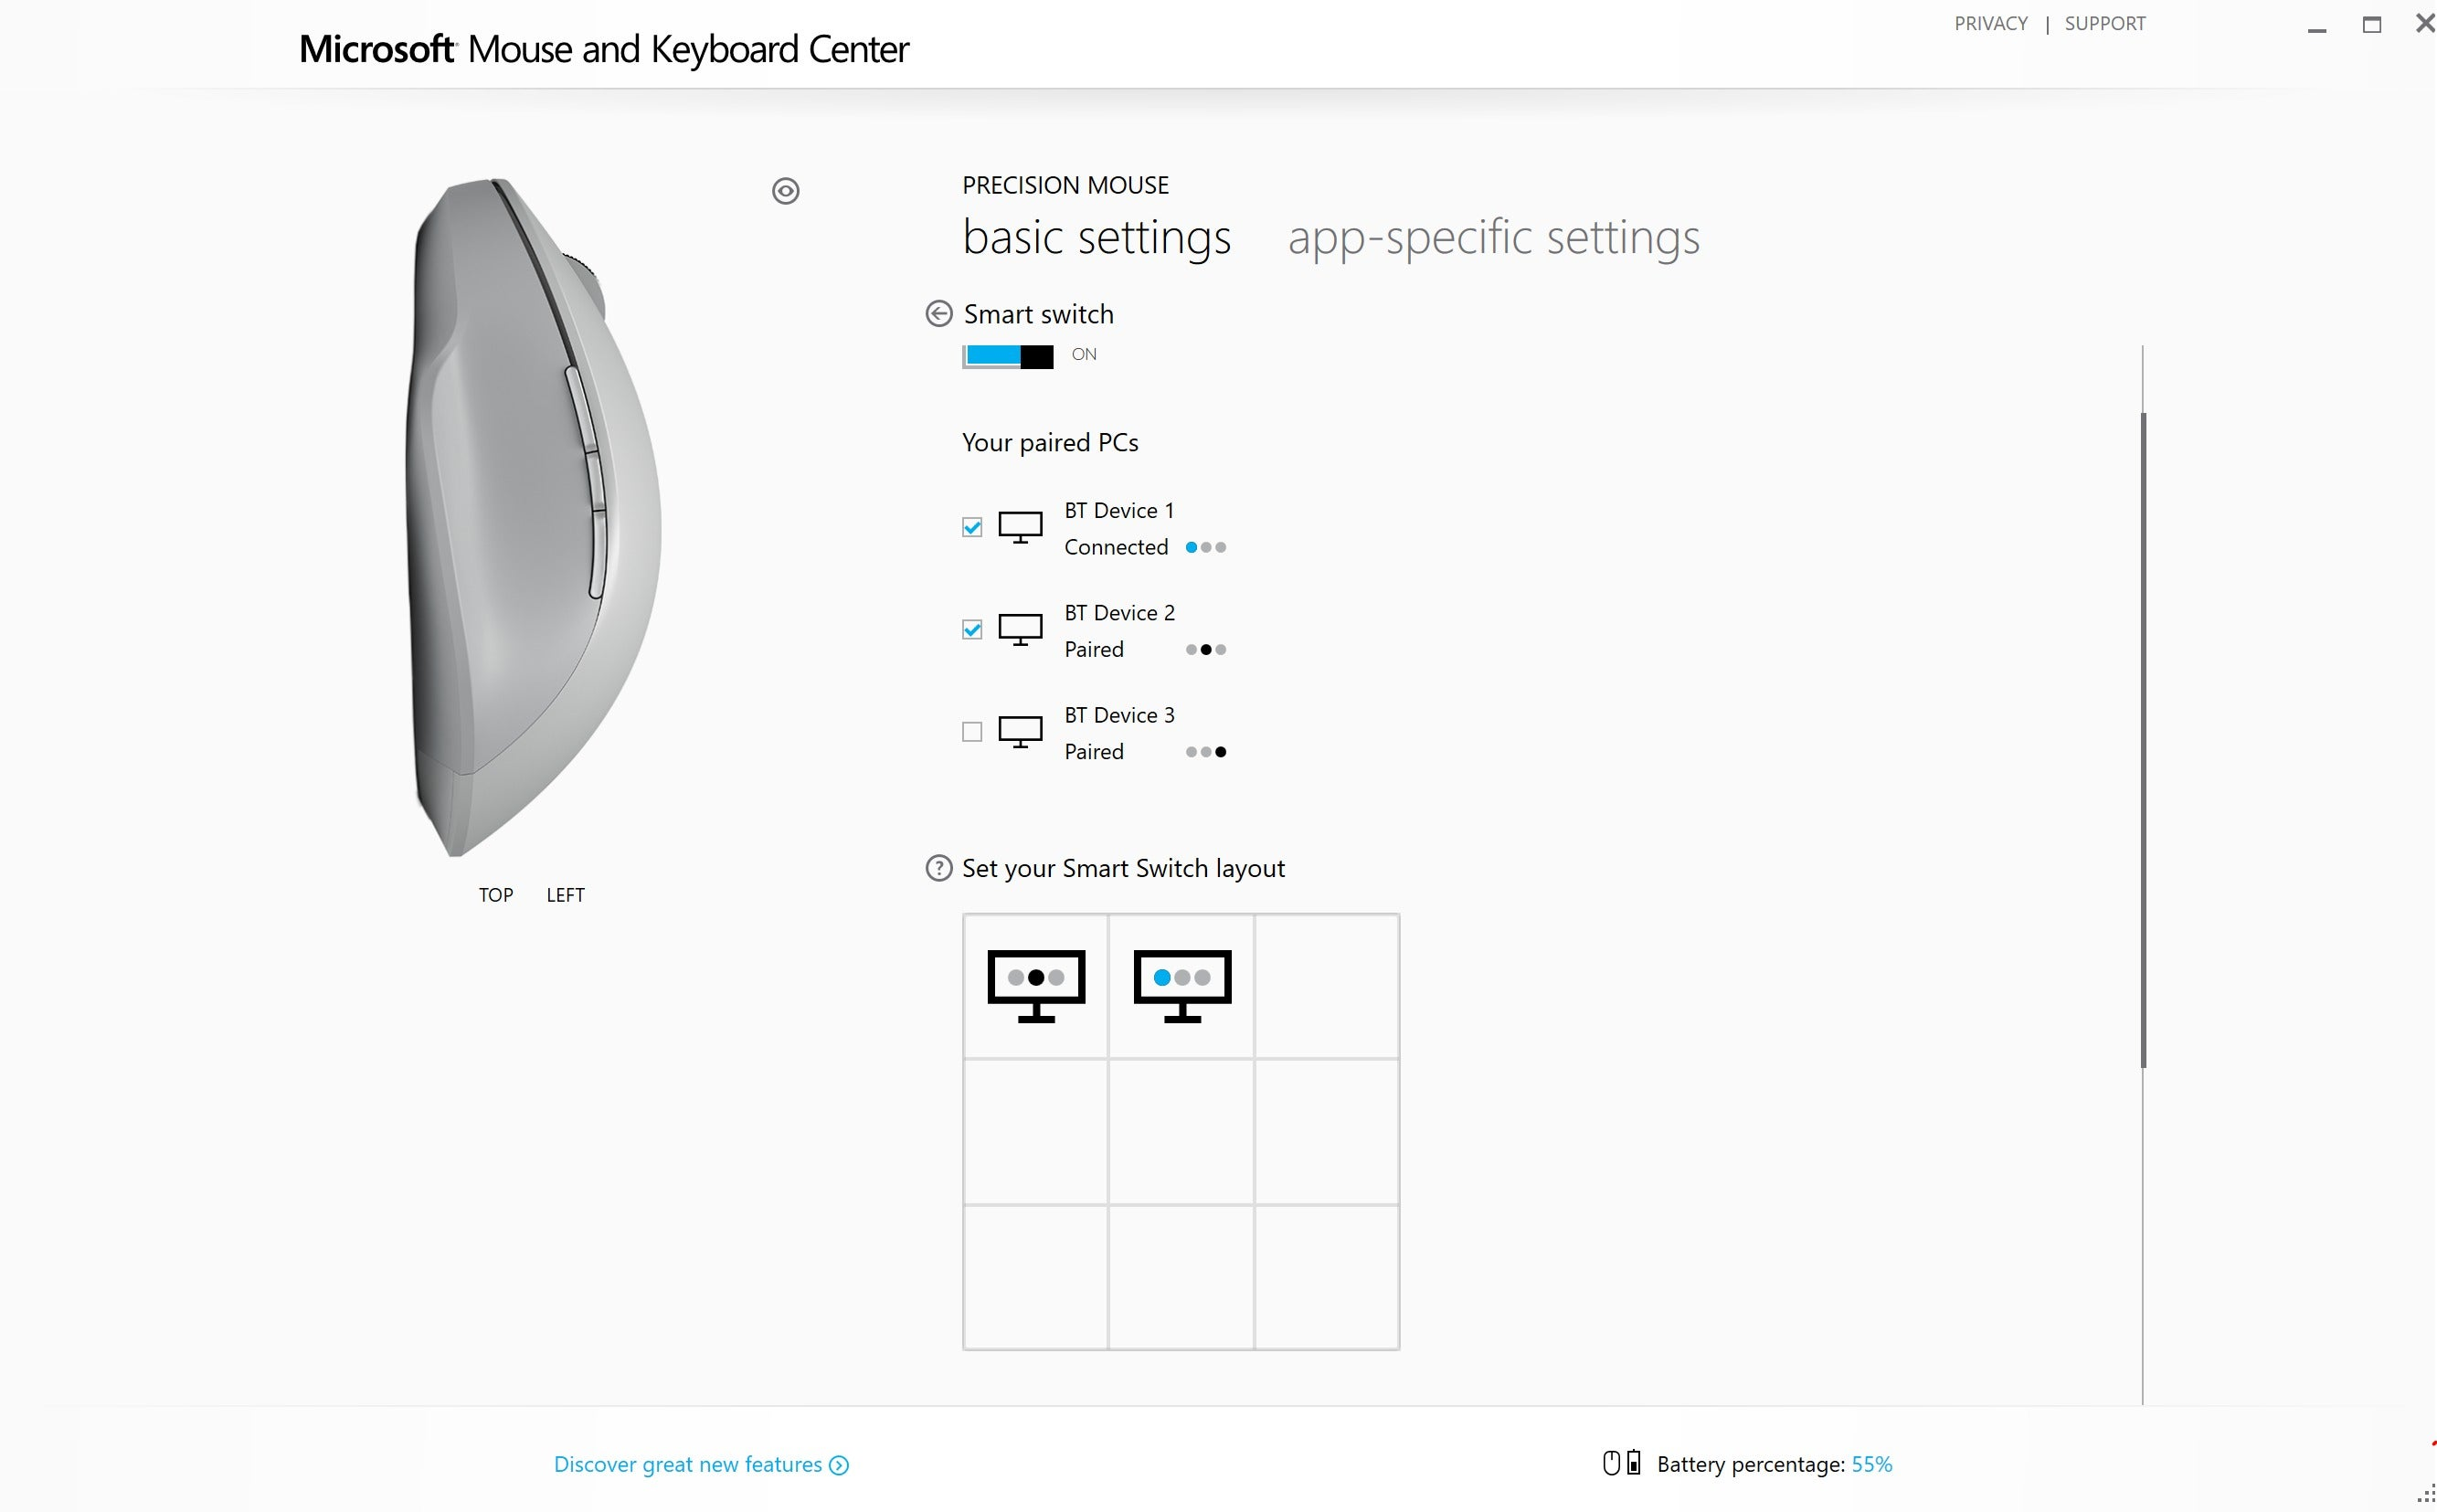 Microsoft Surface Precision Mouse review: A flagship mouse